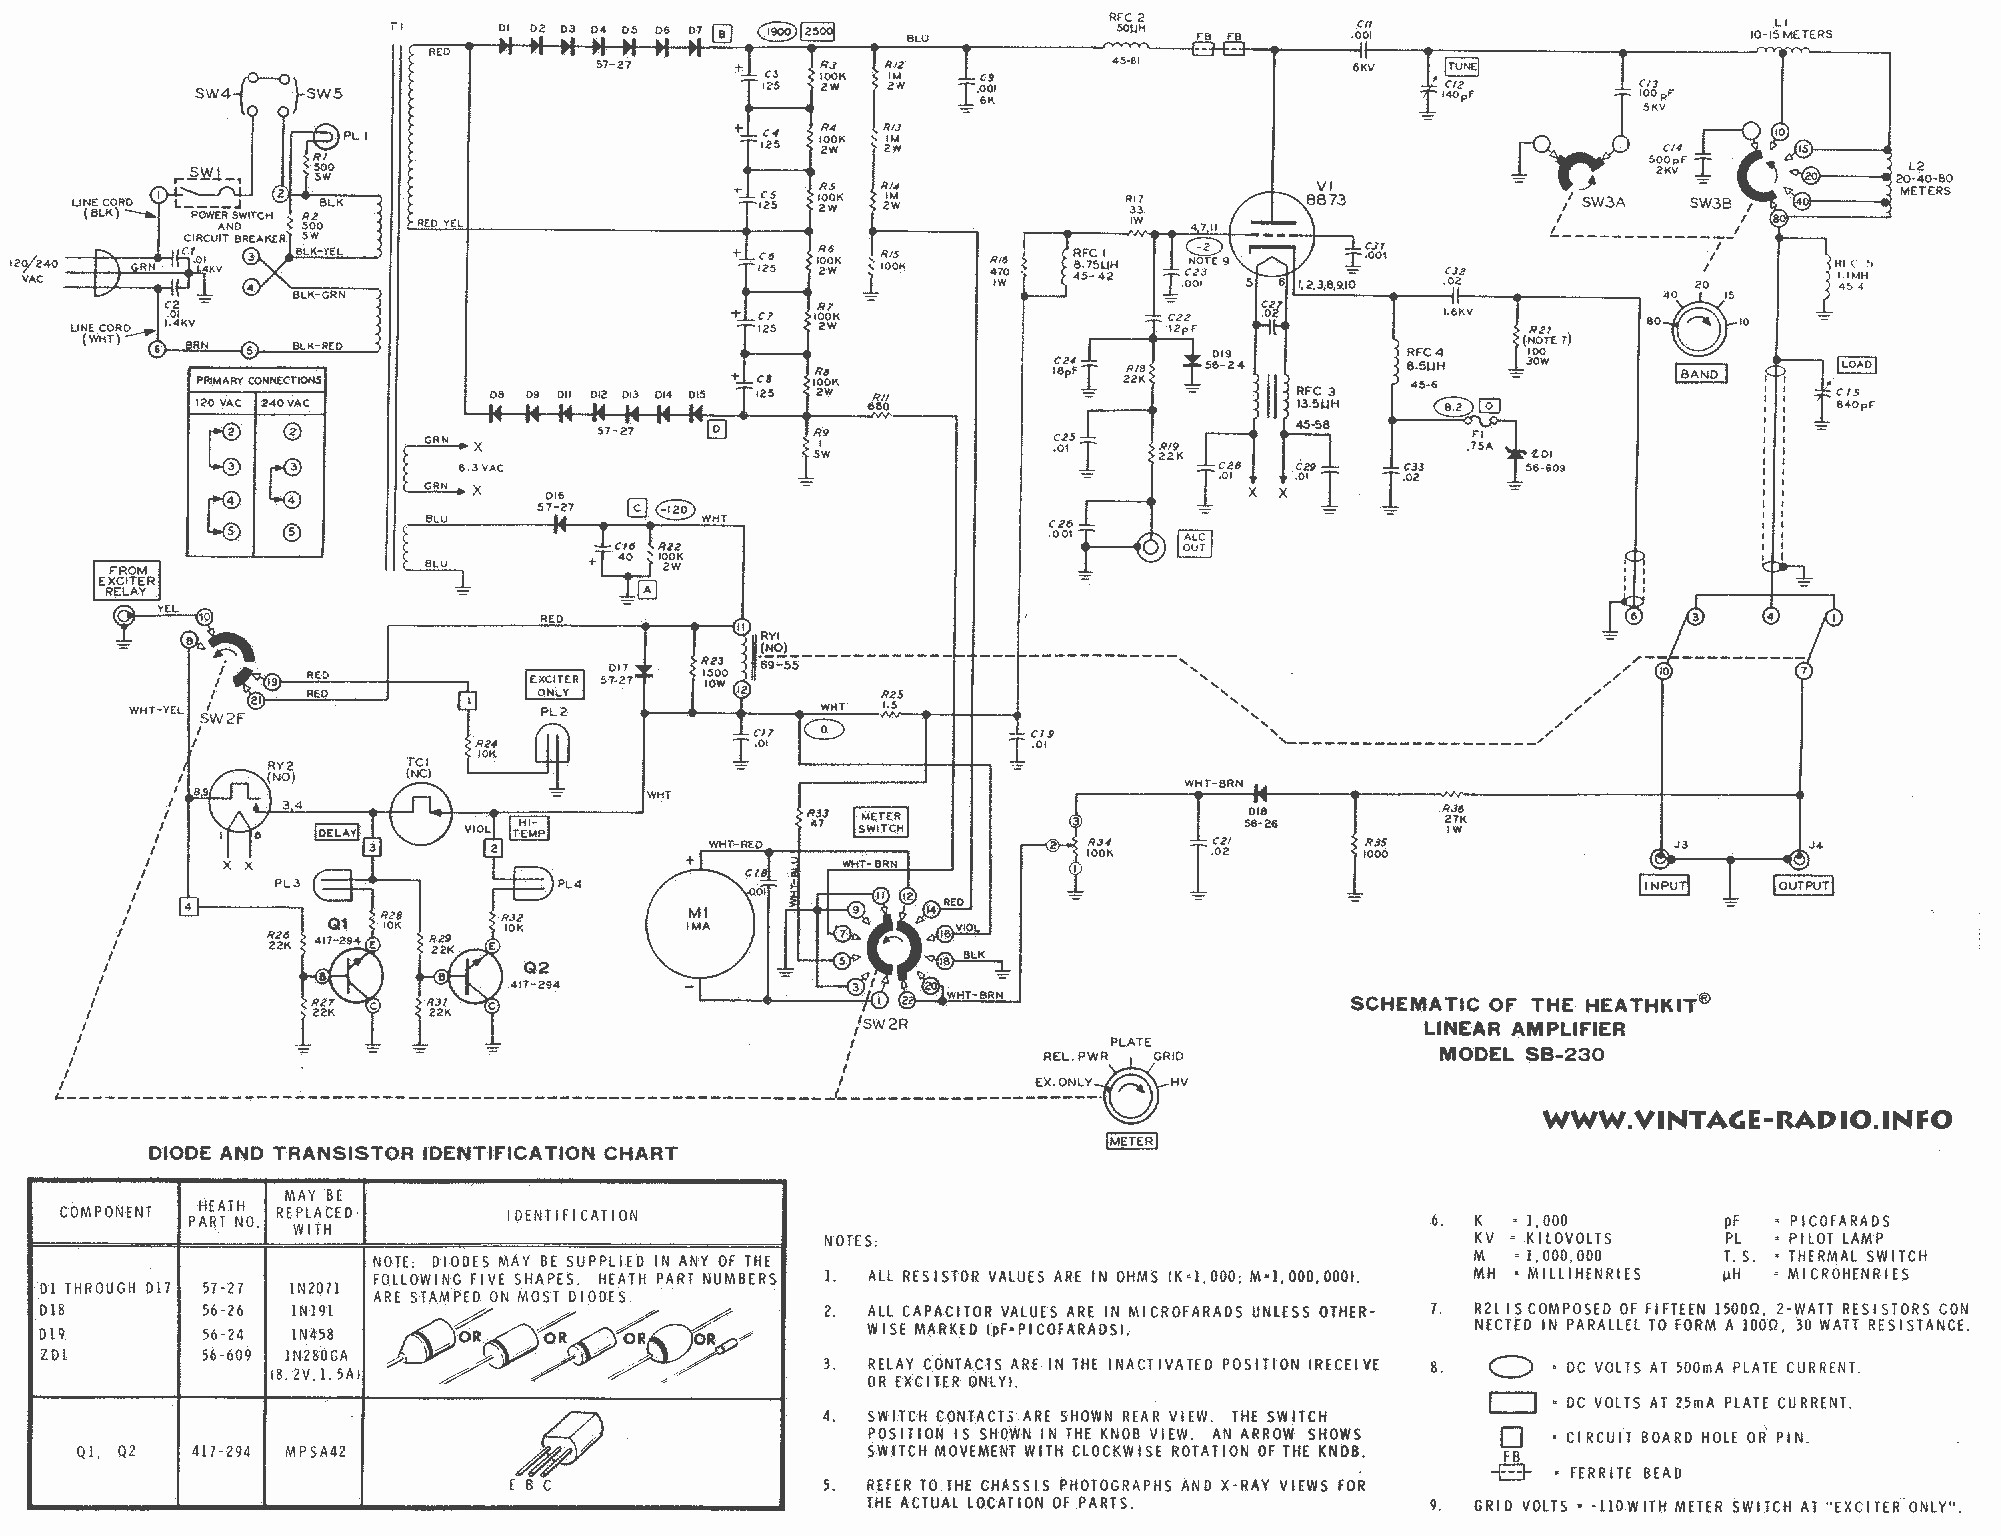 DOWNLOAD [DIAGRAM] Ezgo Marathon Wiring Diagram 36 Volt